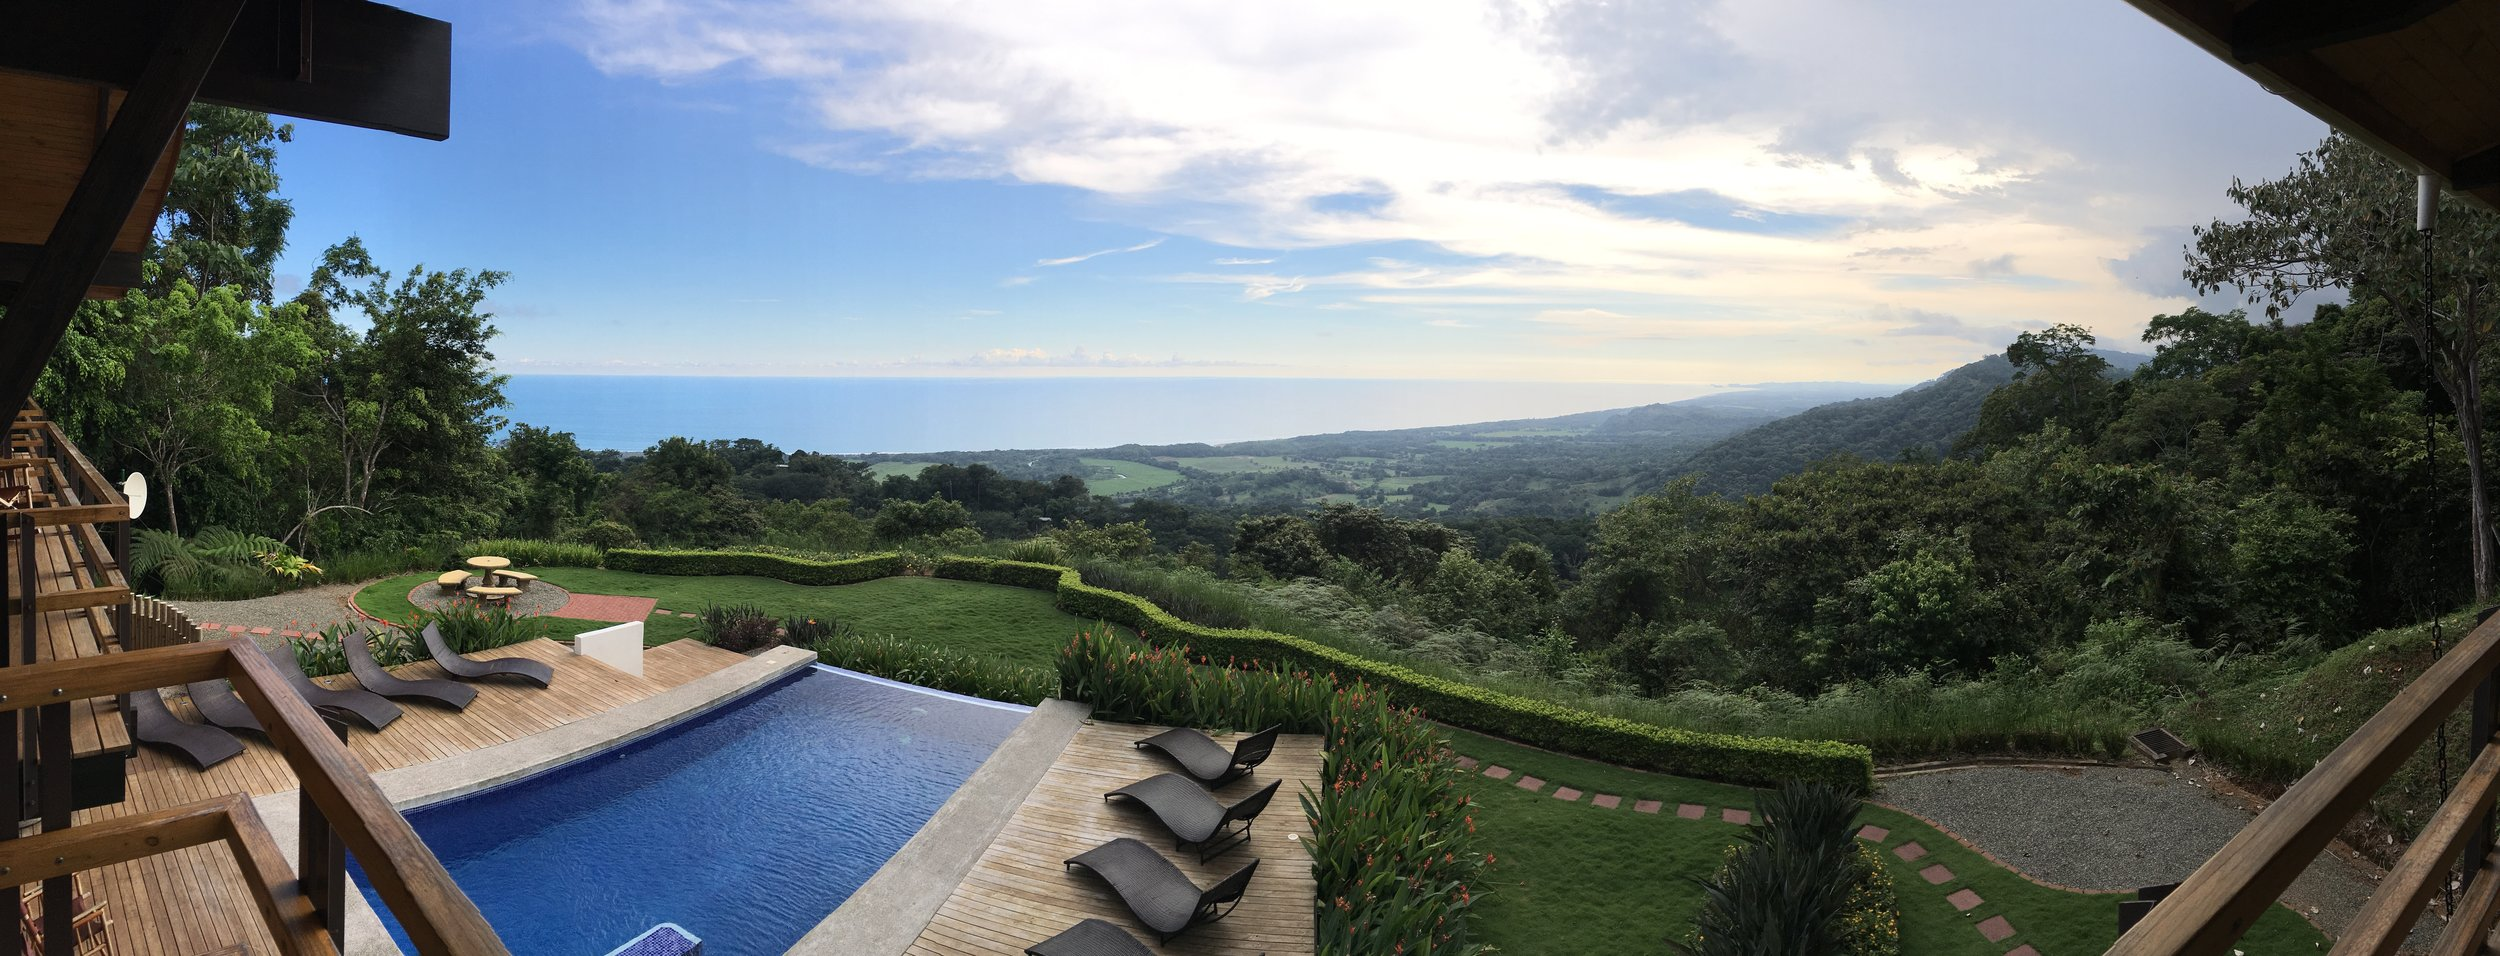 View of the Pacific, from Kalon Resort, Dominical, Costa Rica